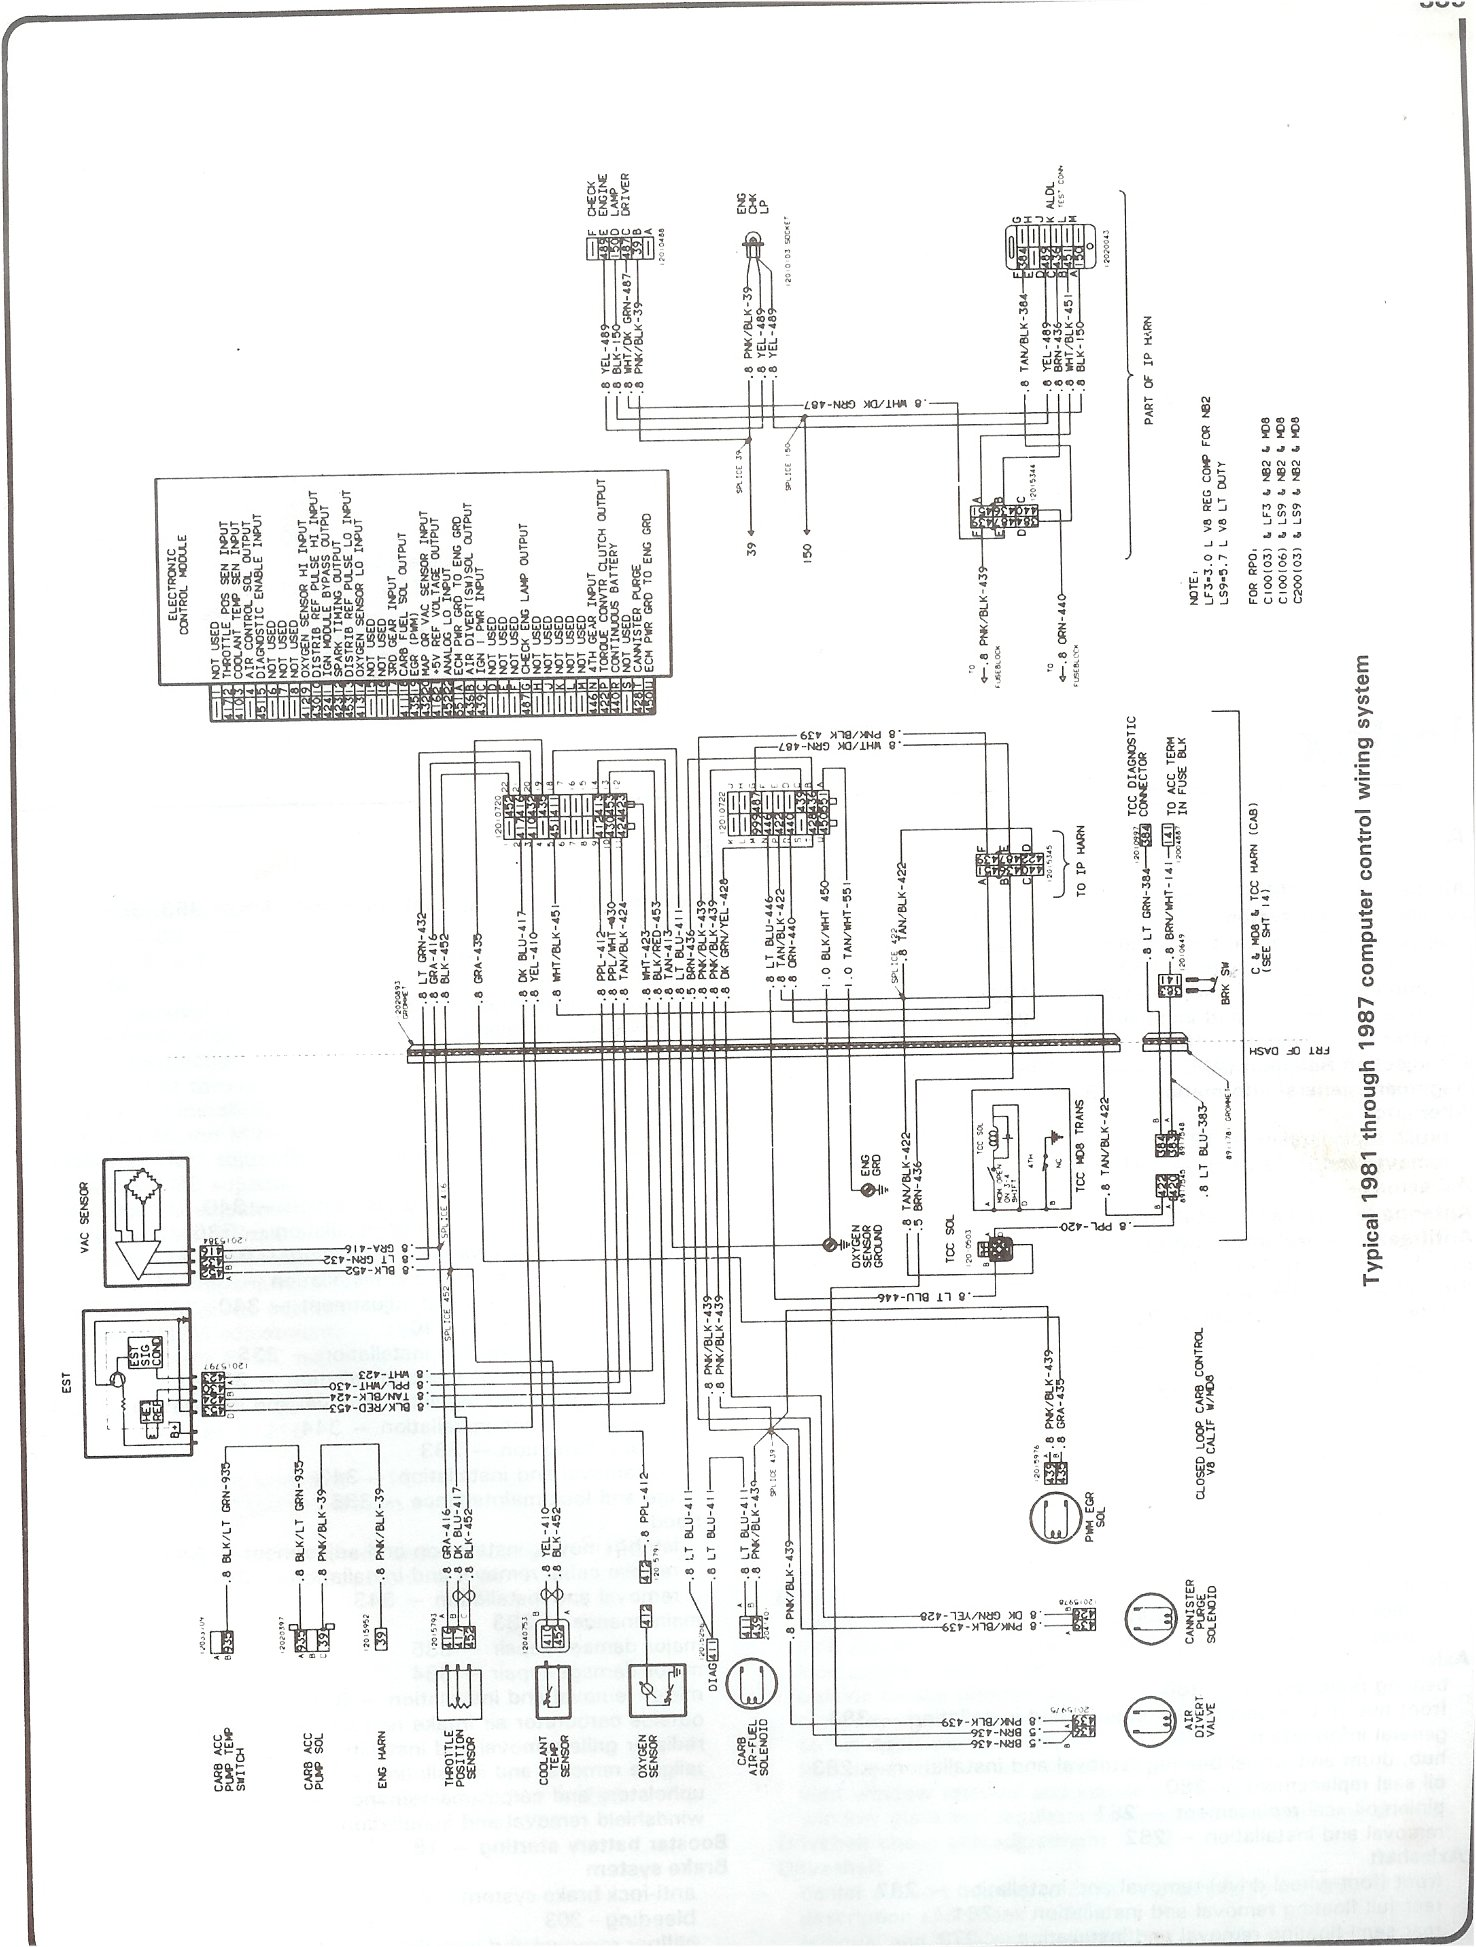 hight resolution of complete 73 87 wiring diagrams 87 chevy camaro engine compartment wiring diagram 81 87 computer control